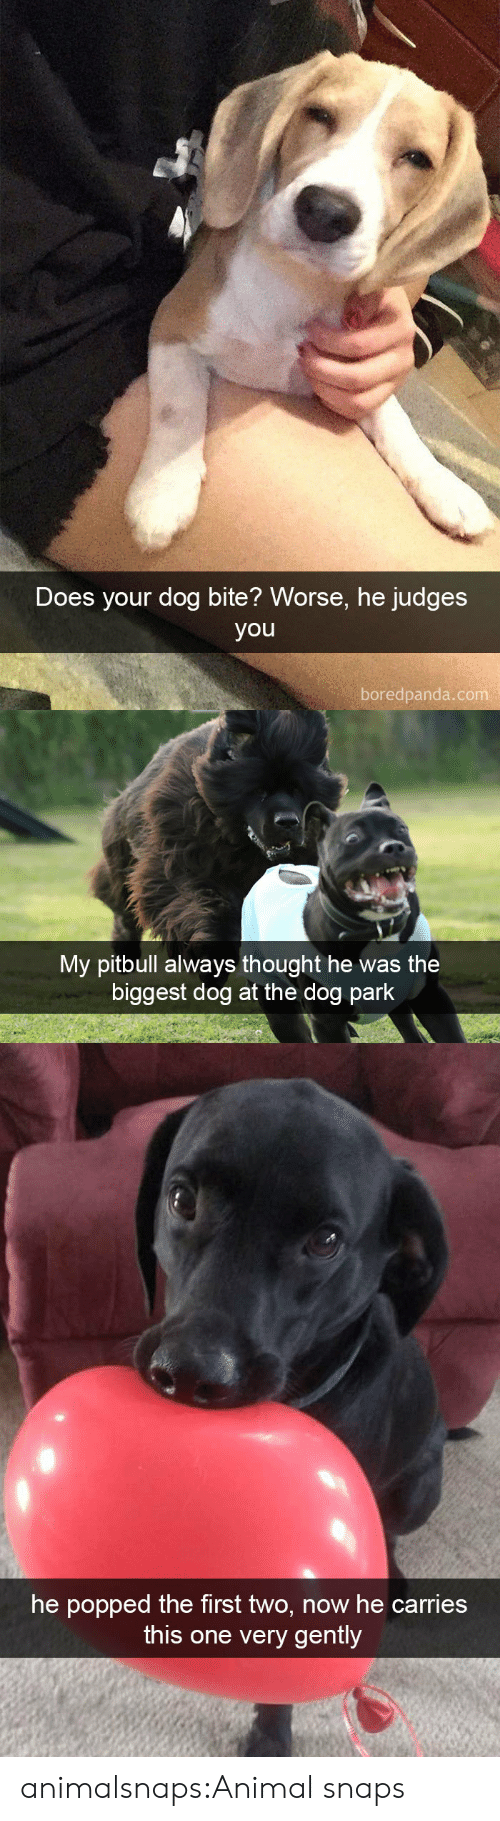 Dog Bite: Does your dog bite? Worse, he judges  you  boredpanda.com   My pitbull always thought he was the  biggest dog at the dog park   he popped the first two, now he carries  this one very gently animalsnaps:Animal snaps